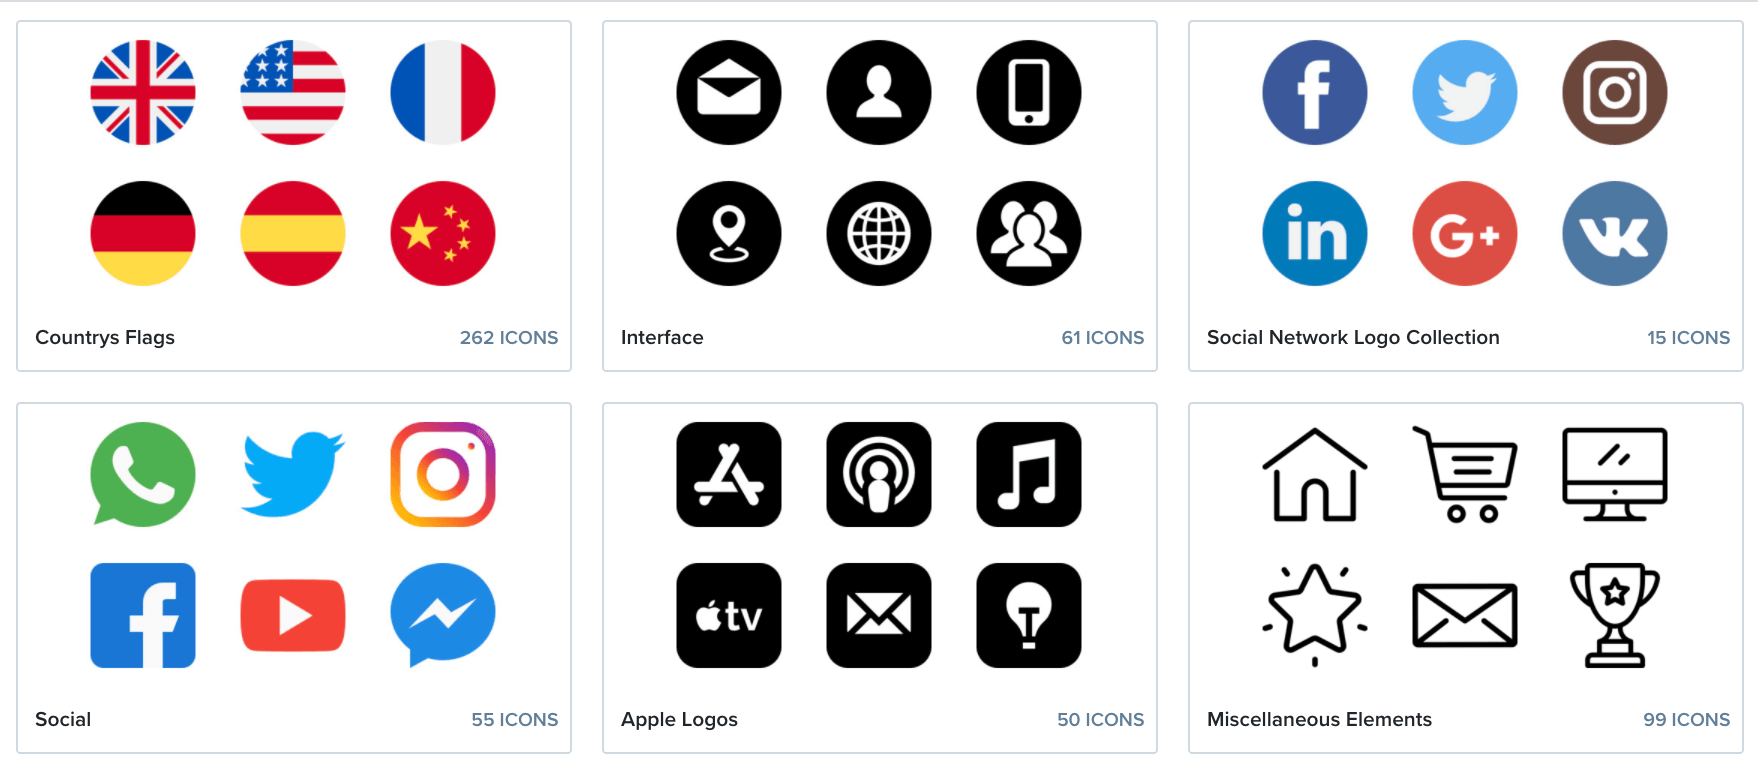 Free icons from Flaticon.